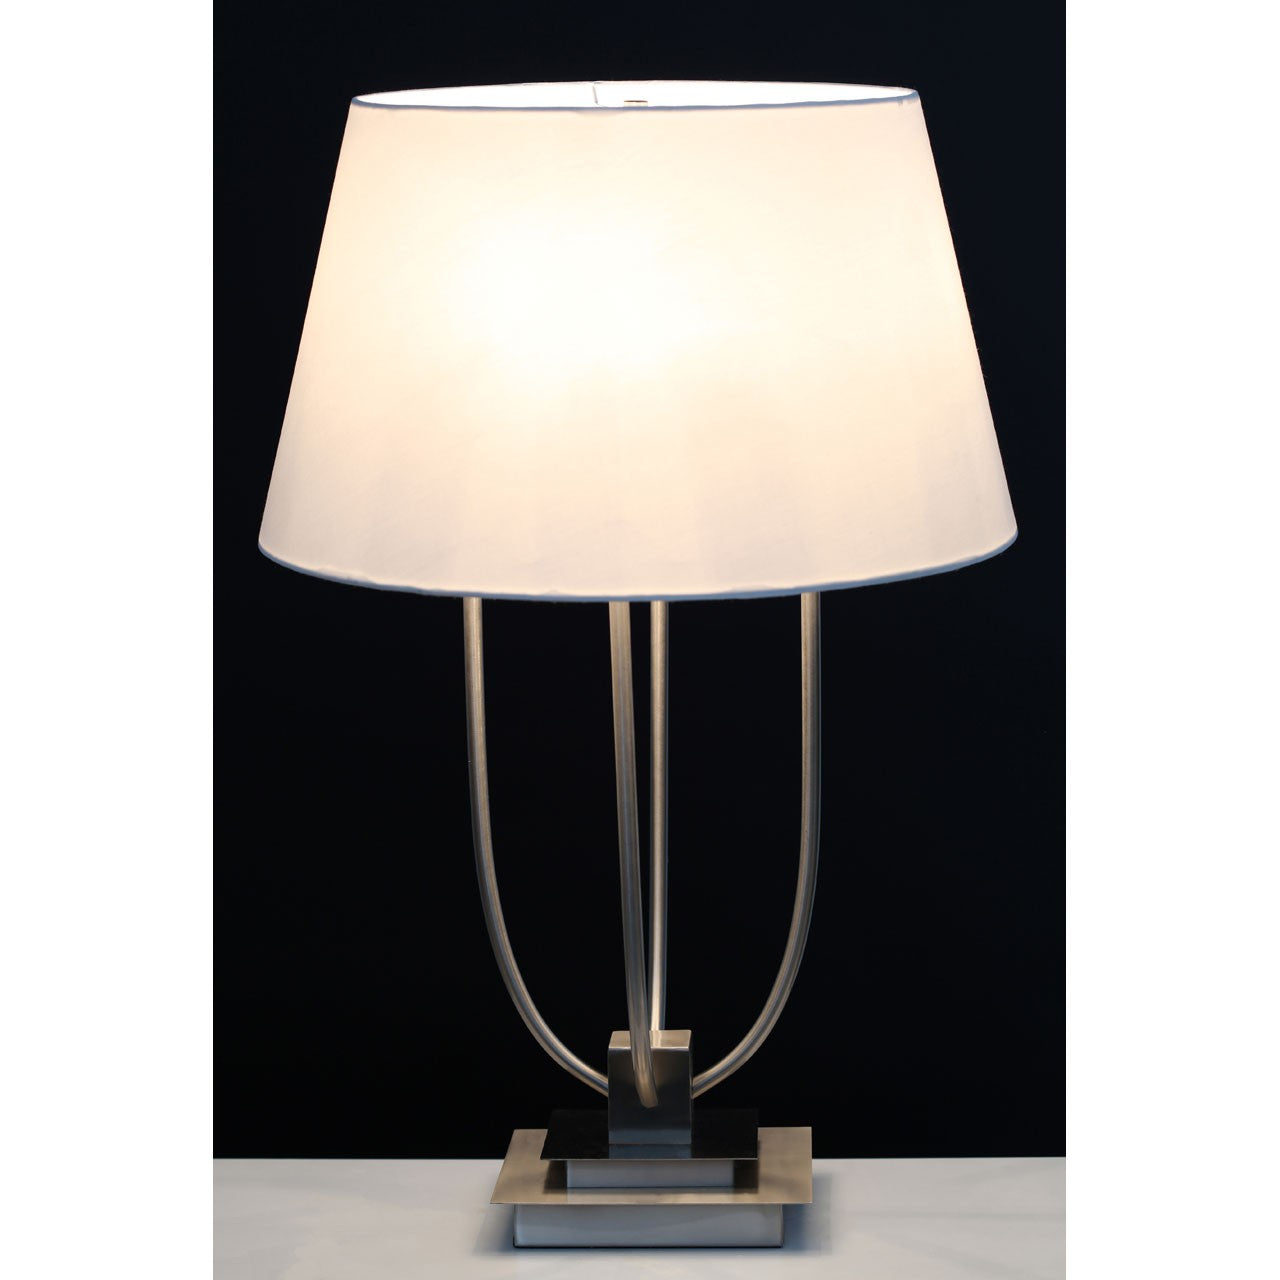 Regents Park Table Lamp Iluminated